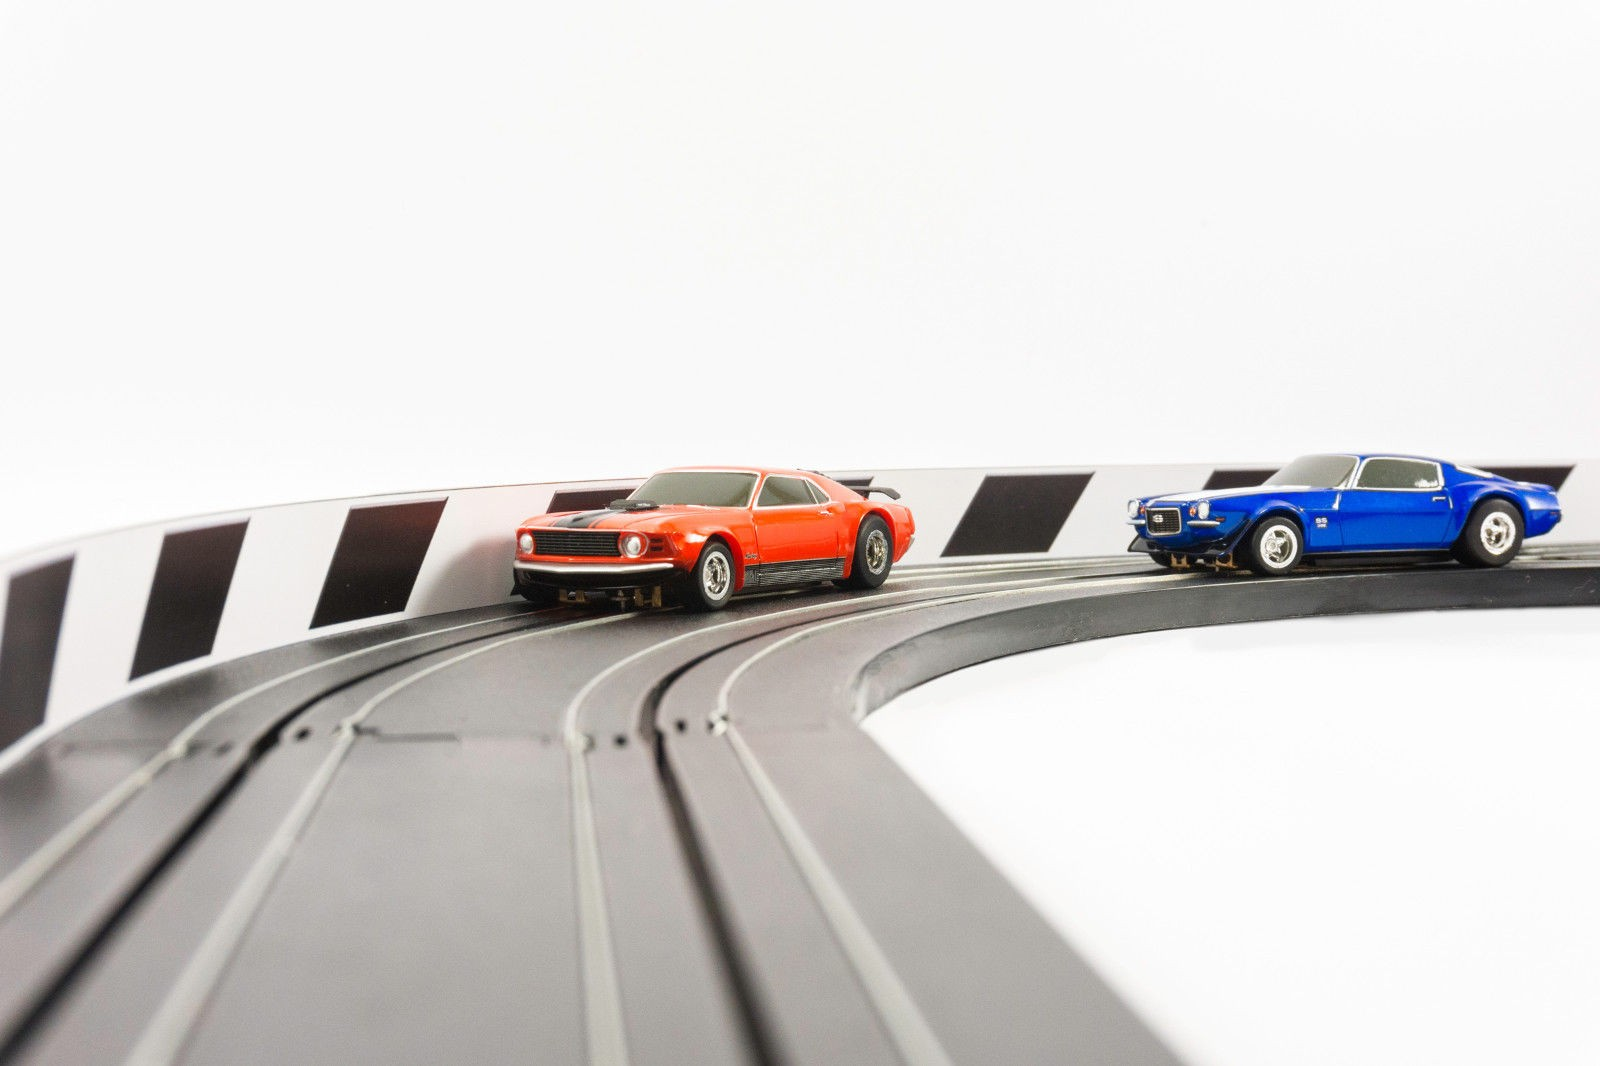 PL 5052 1/64 NEW AFX Slot Car Guard Rail Set - PhotoReal FITS: Aurora, Model Motoring -Style 6 Black & White